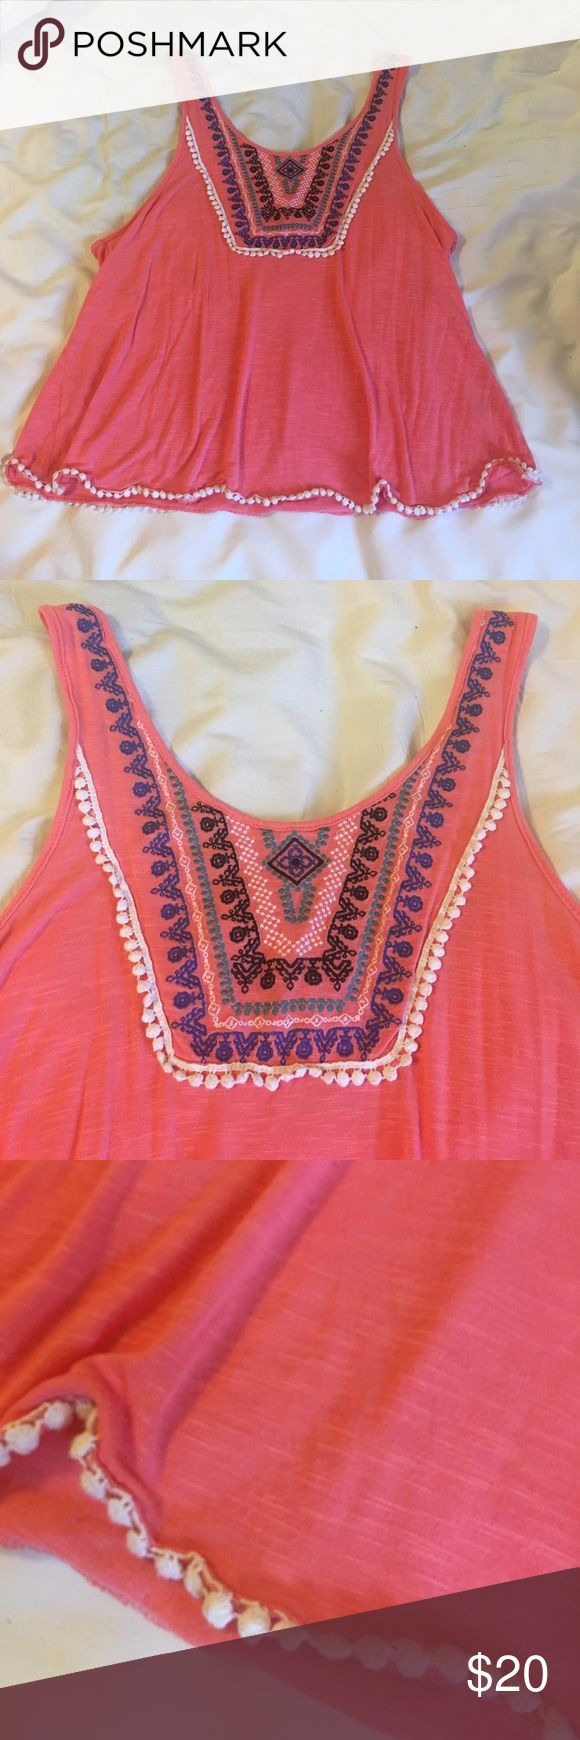 Tank Super cute tank! EUC!! Kind of like a coralish color, color is well represented in picture. Super soft material. Absolutely nothing wrong with it! Red Camel Tops Tank Tops